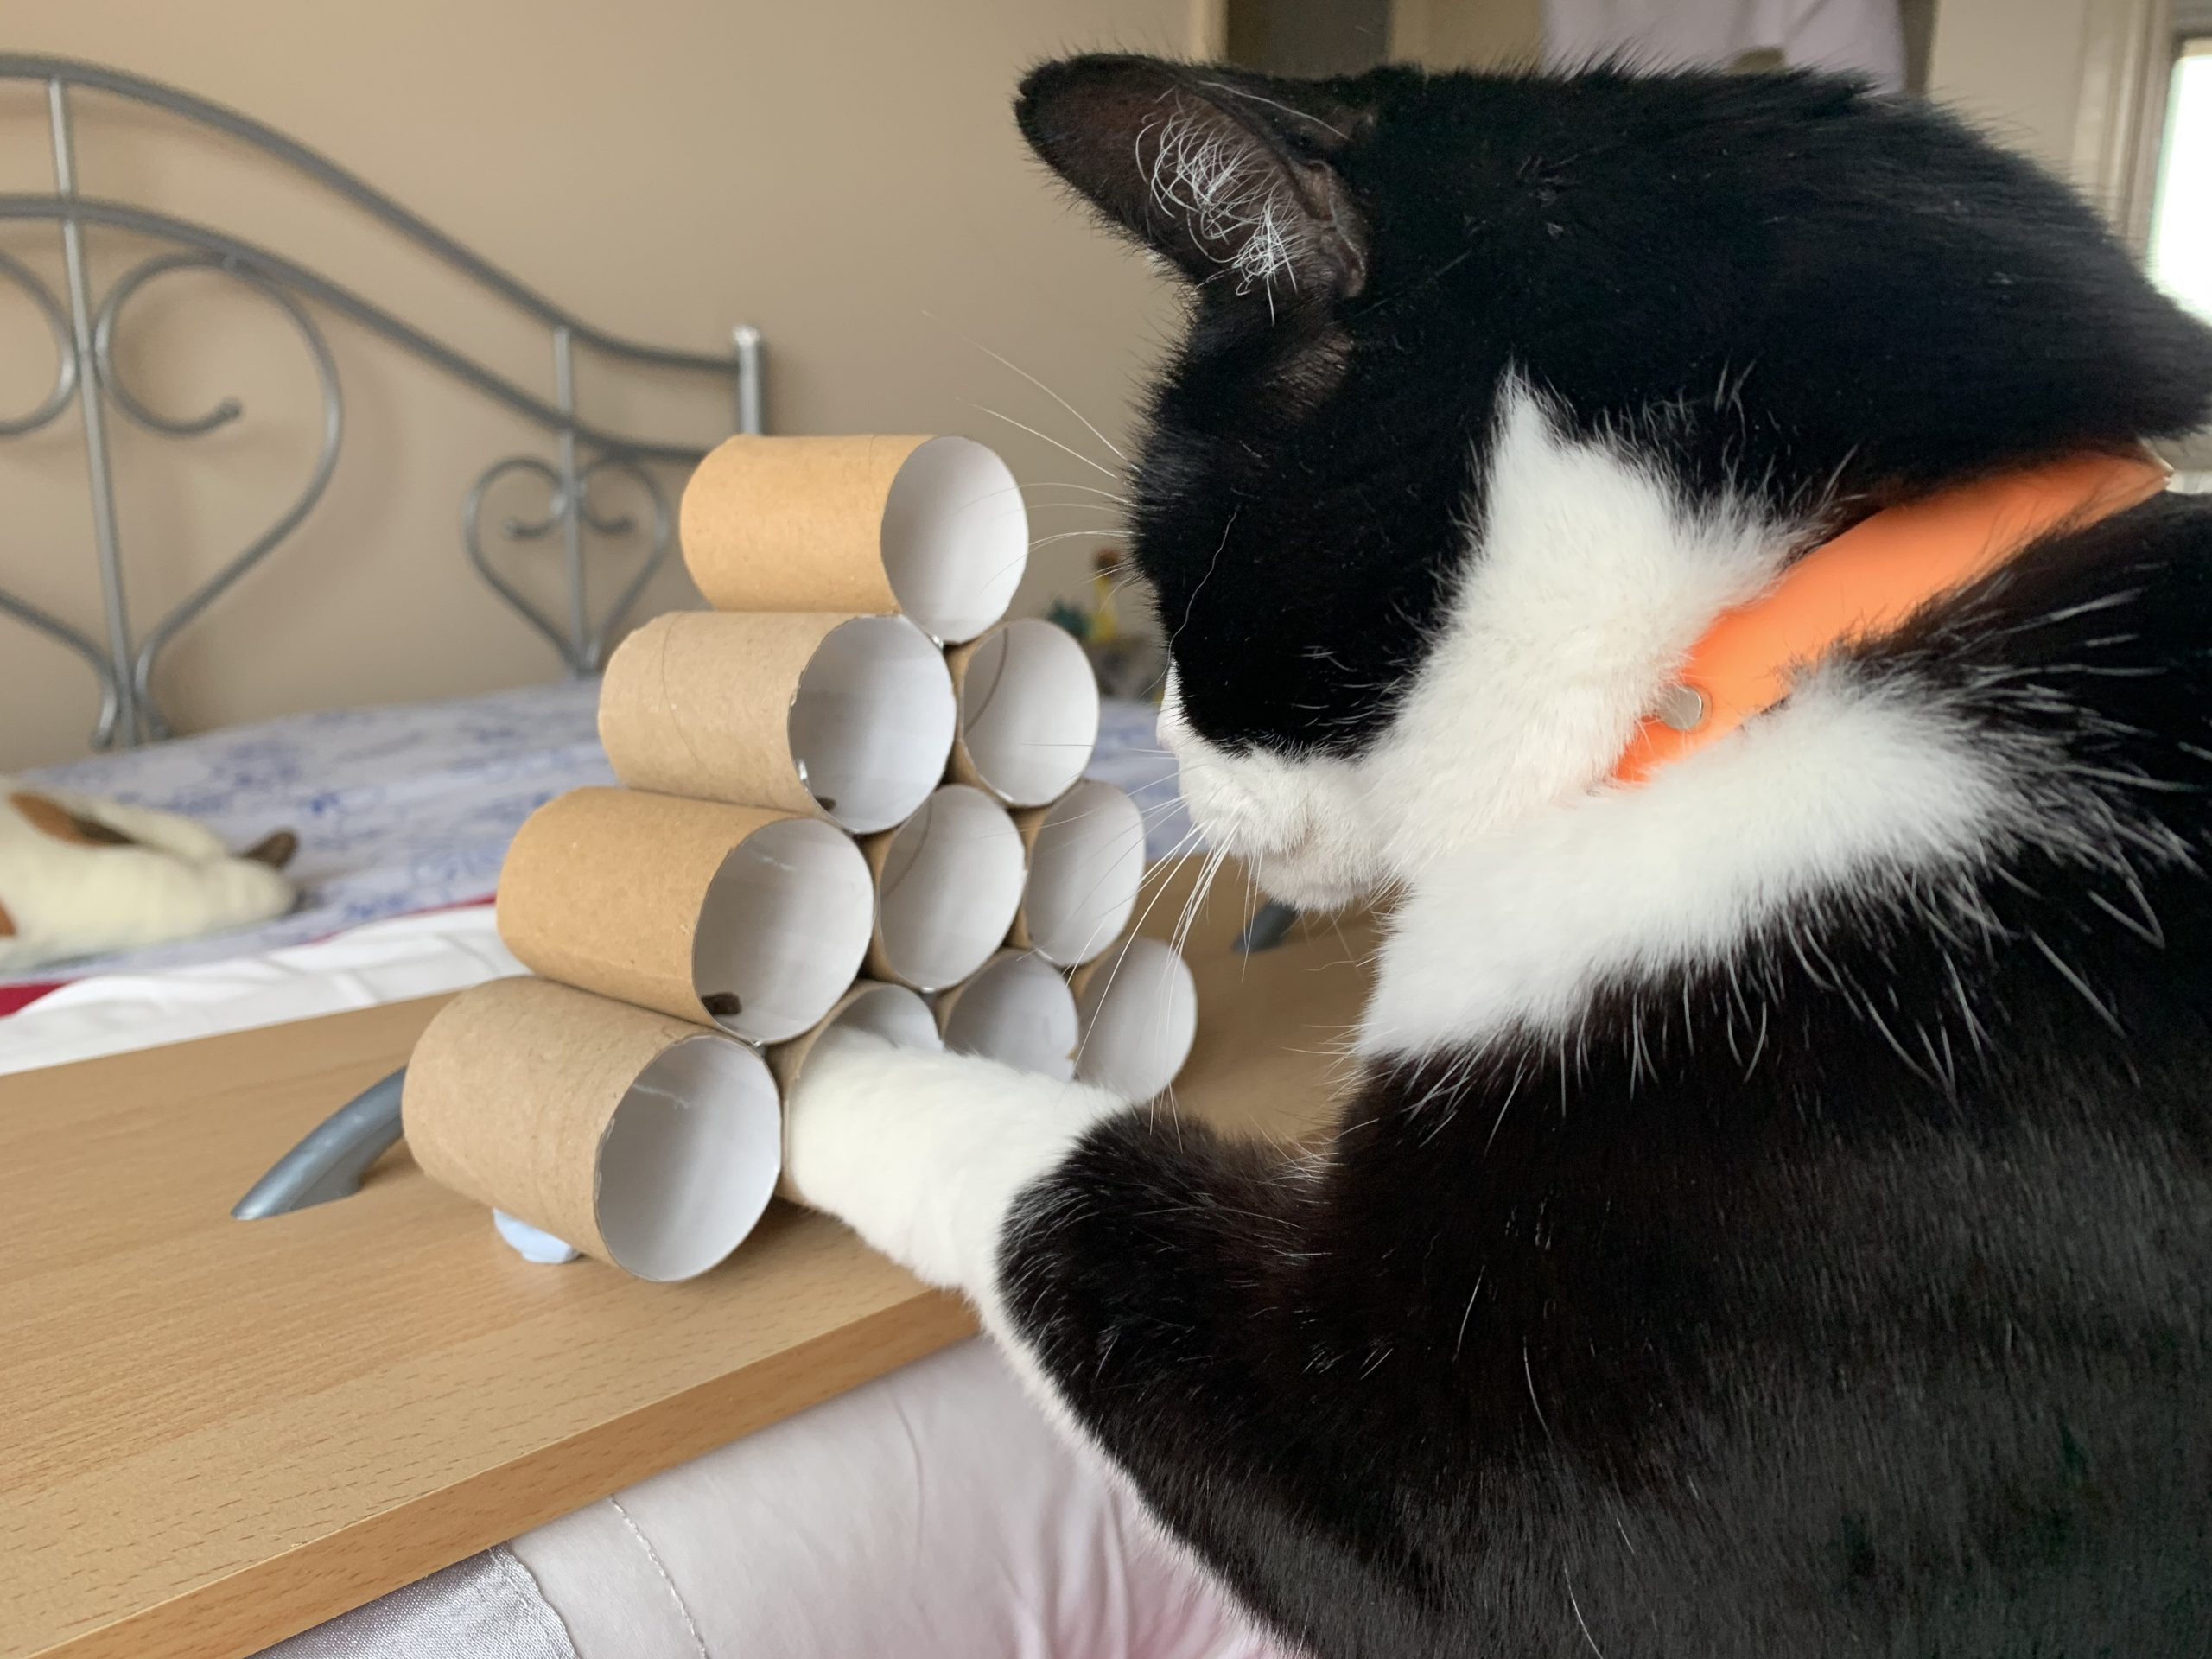 How can I make meal times more interesting for my cat?